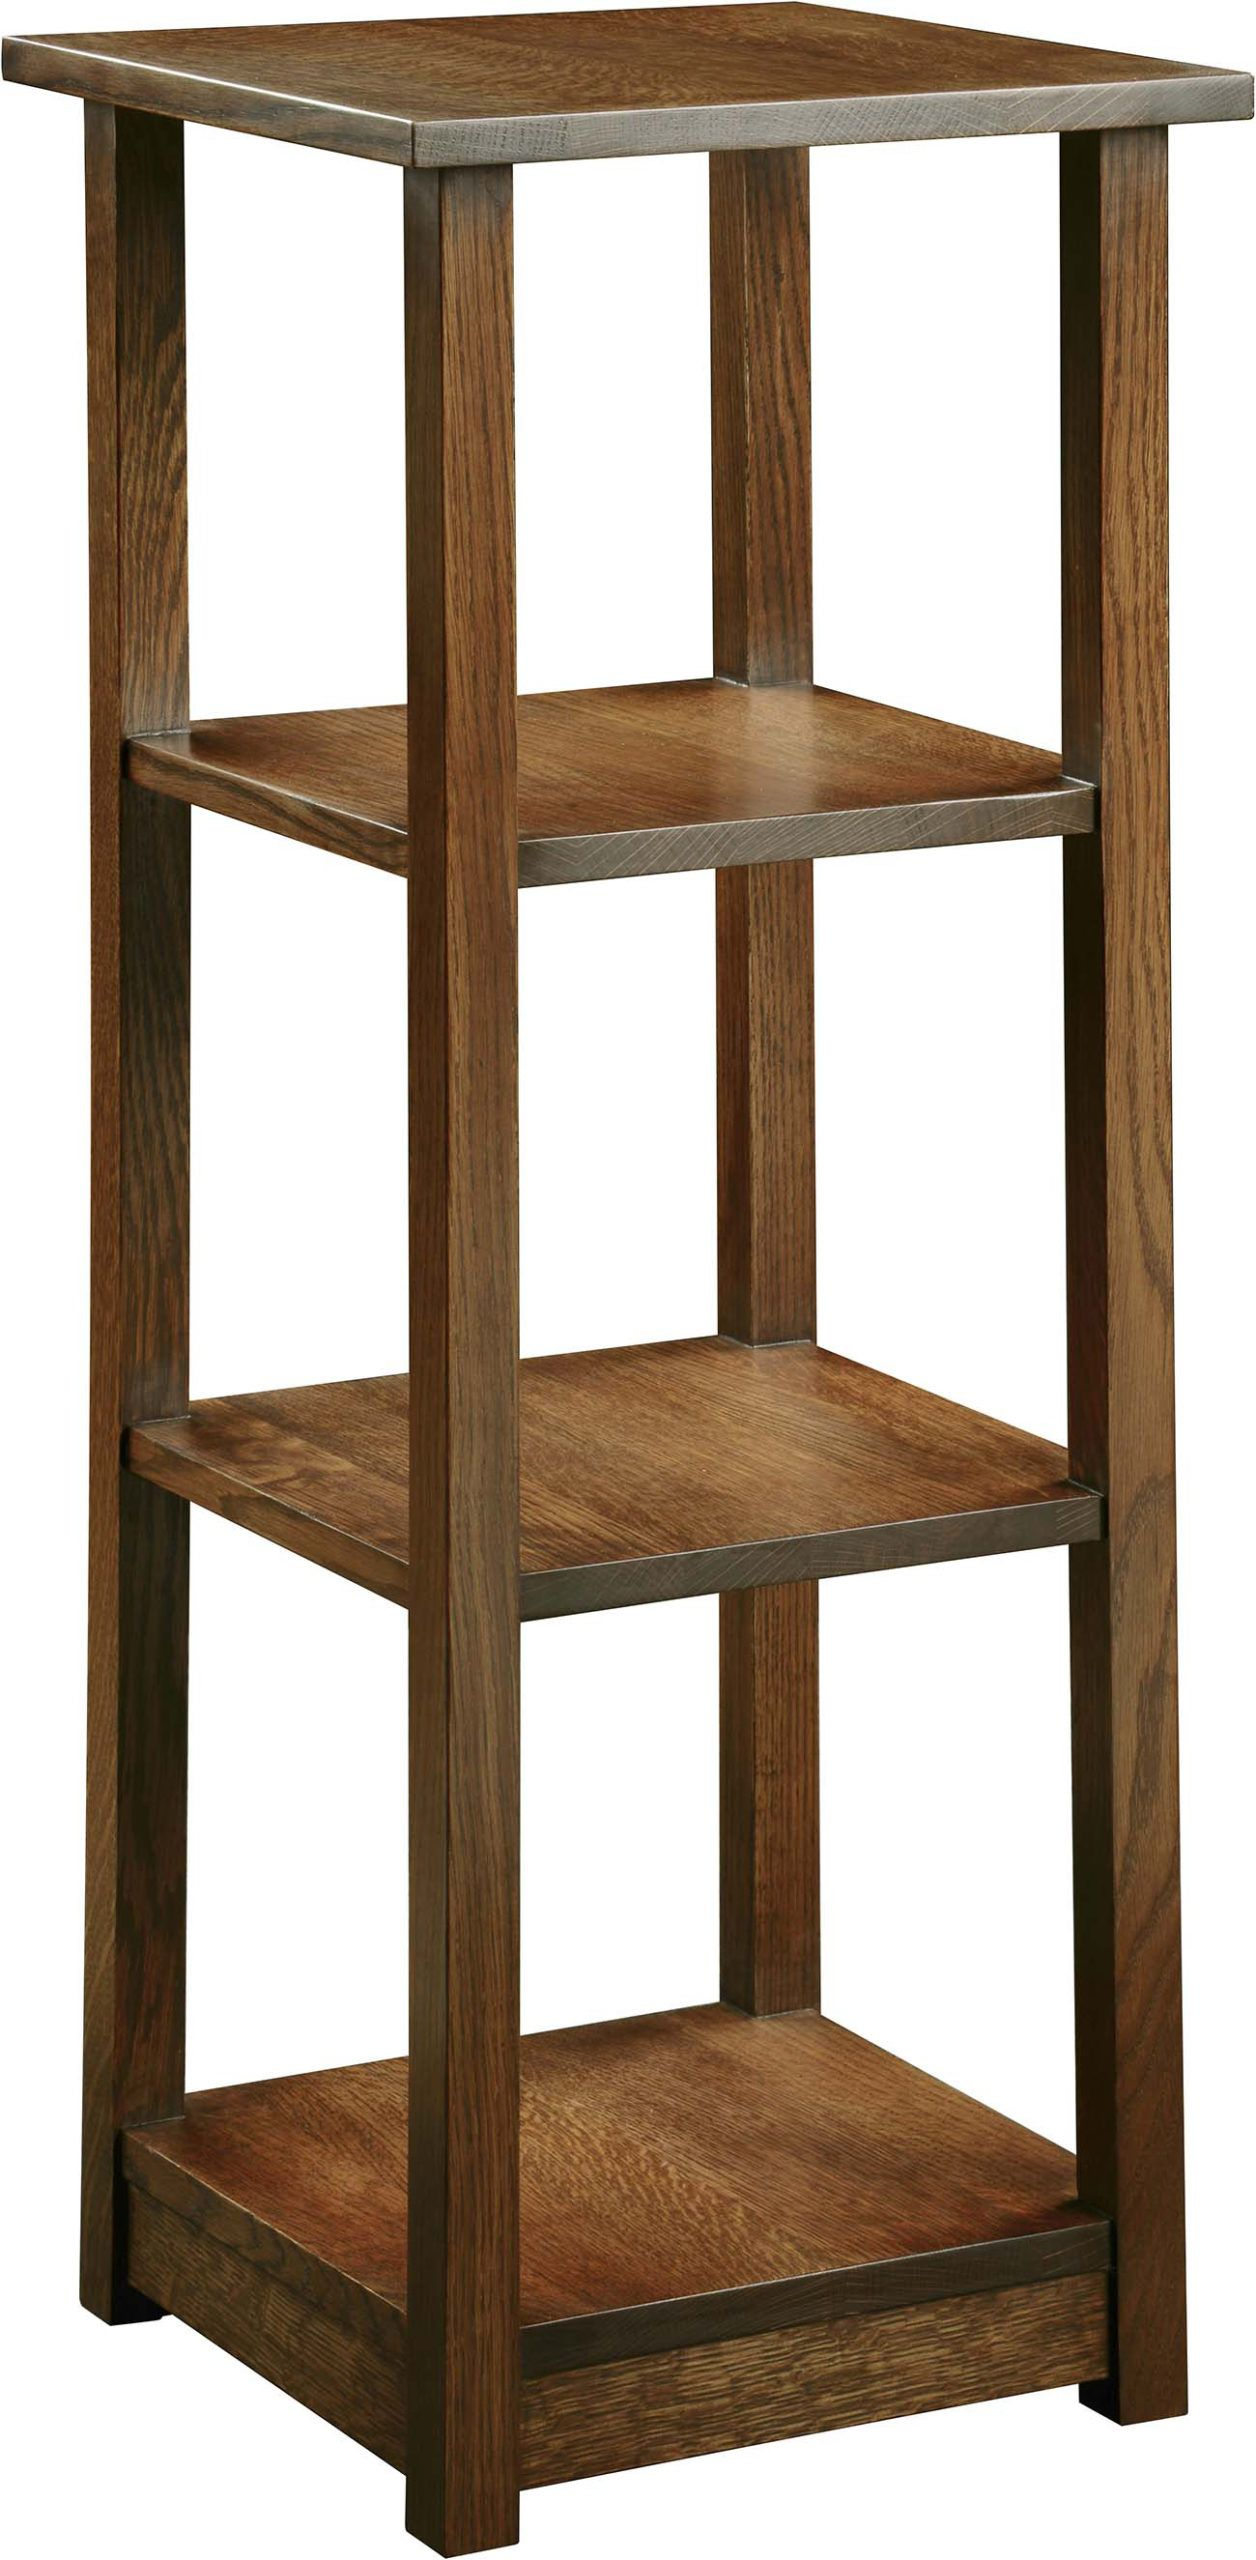 Walnut Grove Gathering Island Walnut Grove Collection Stickley Furniture In 2020 Stickley Furniture Bookcase With Glass Doors Round Pedestal Dining Table